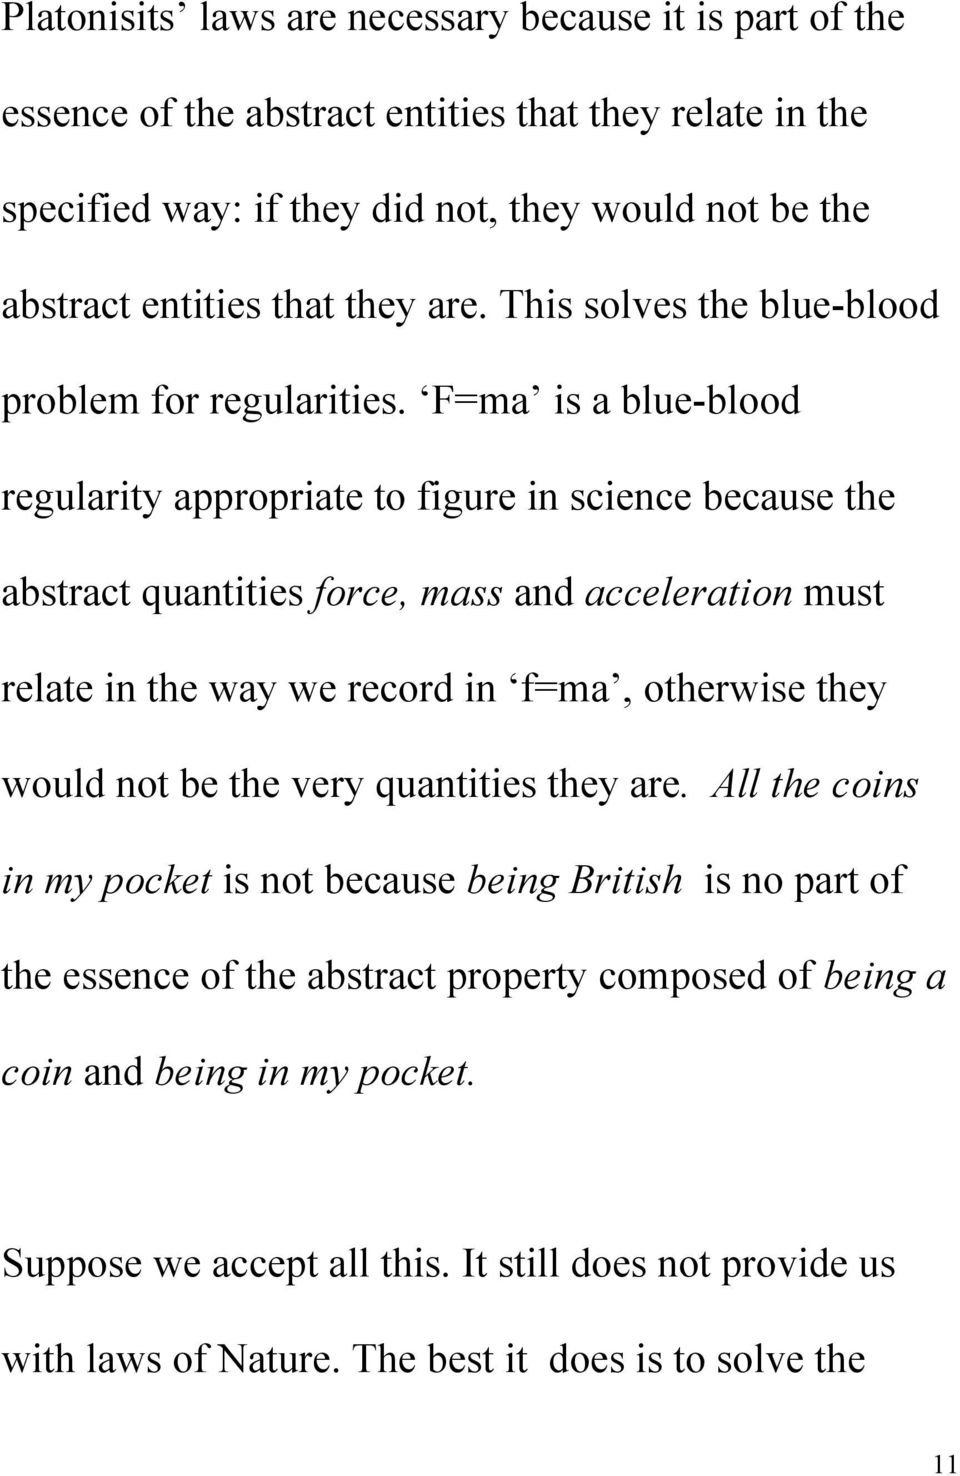 F=ma is a blue-blood regularity appropriate to figure in science because the abstract quantities force, mass and acceleration must relate in the way we record in f=ma, otherwise they